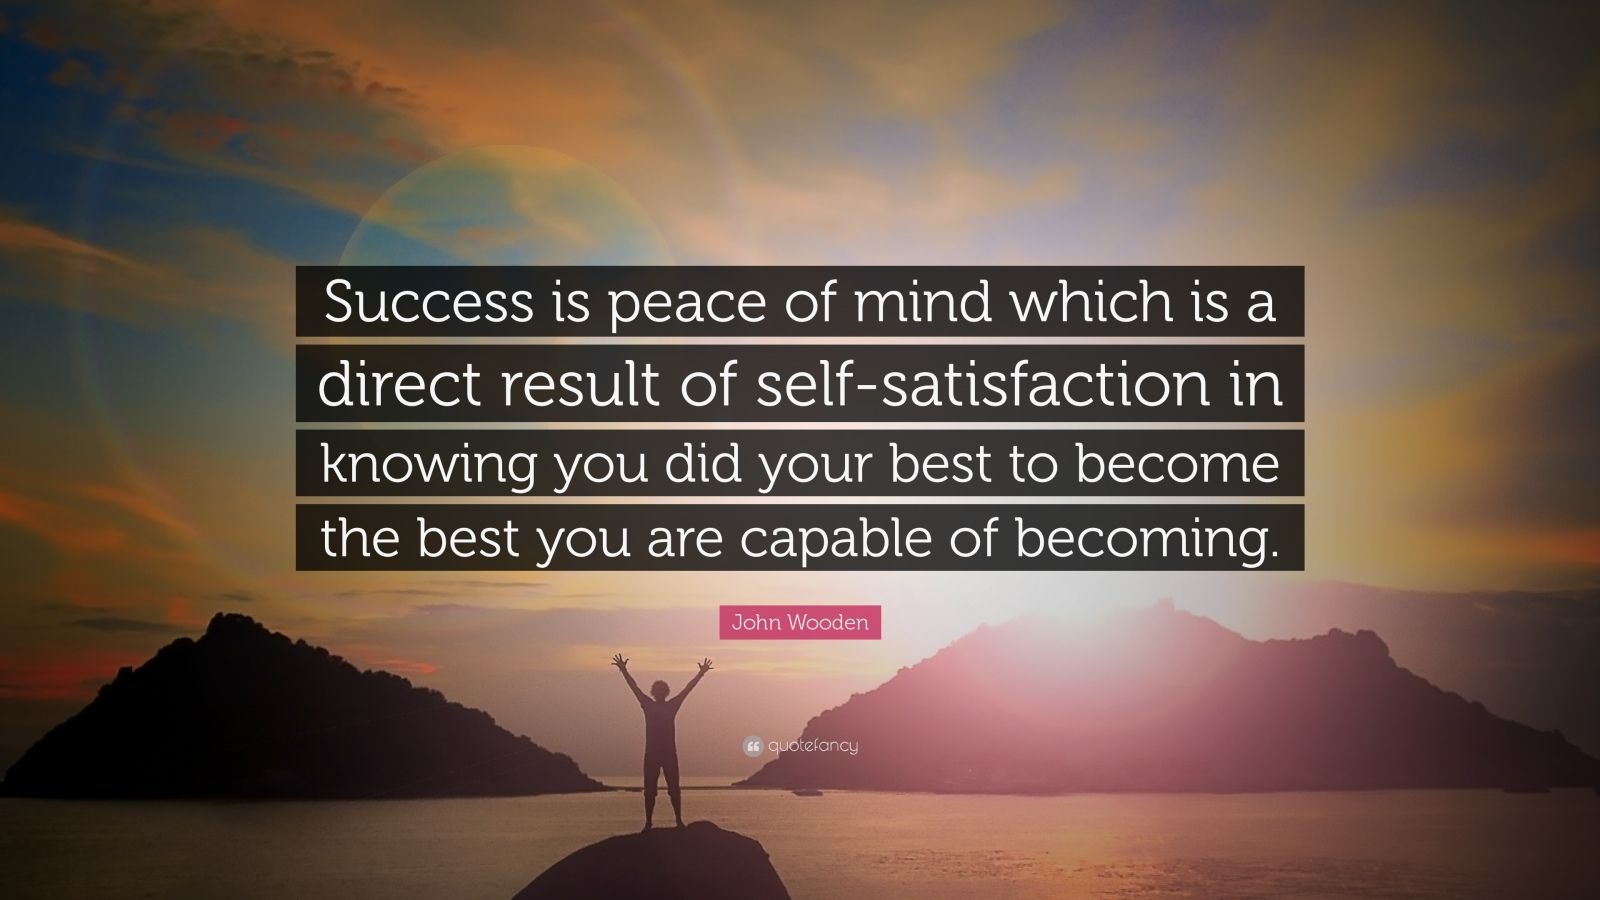 Wallpaper Quote About Life John Wooden Quote Success Is Peace Of Mind Which Is A